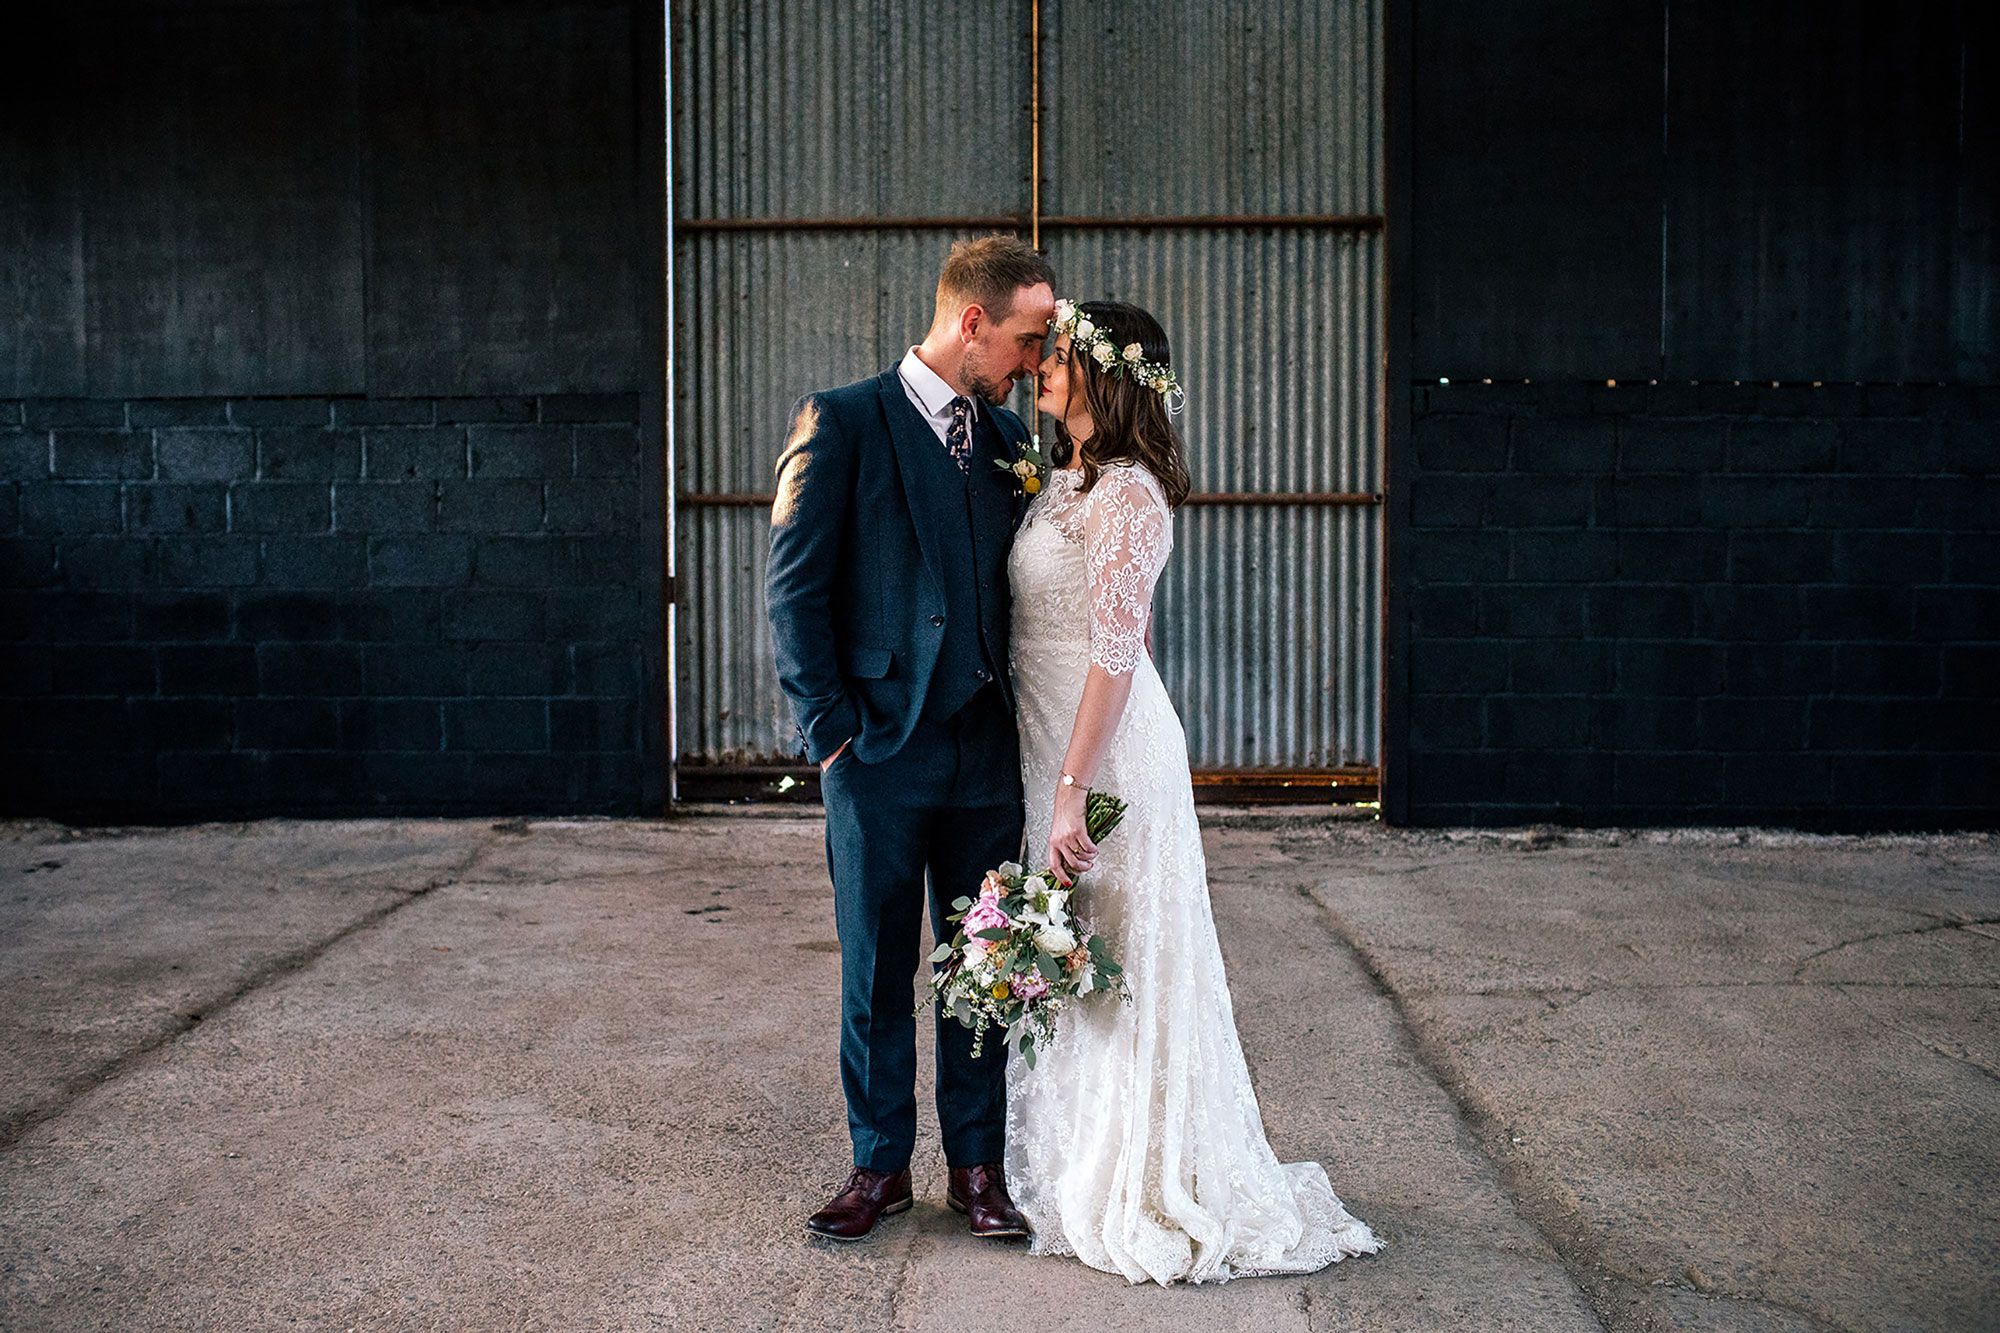 bride and groom standing in a dark cow shed for their wedding portraits at Curradine barns Worcestershire